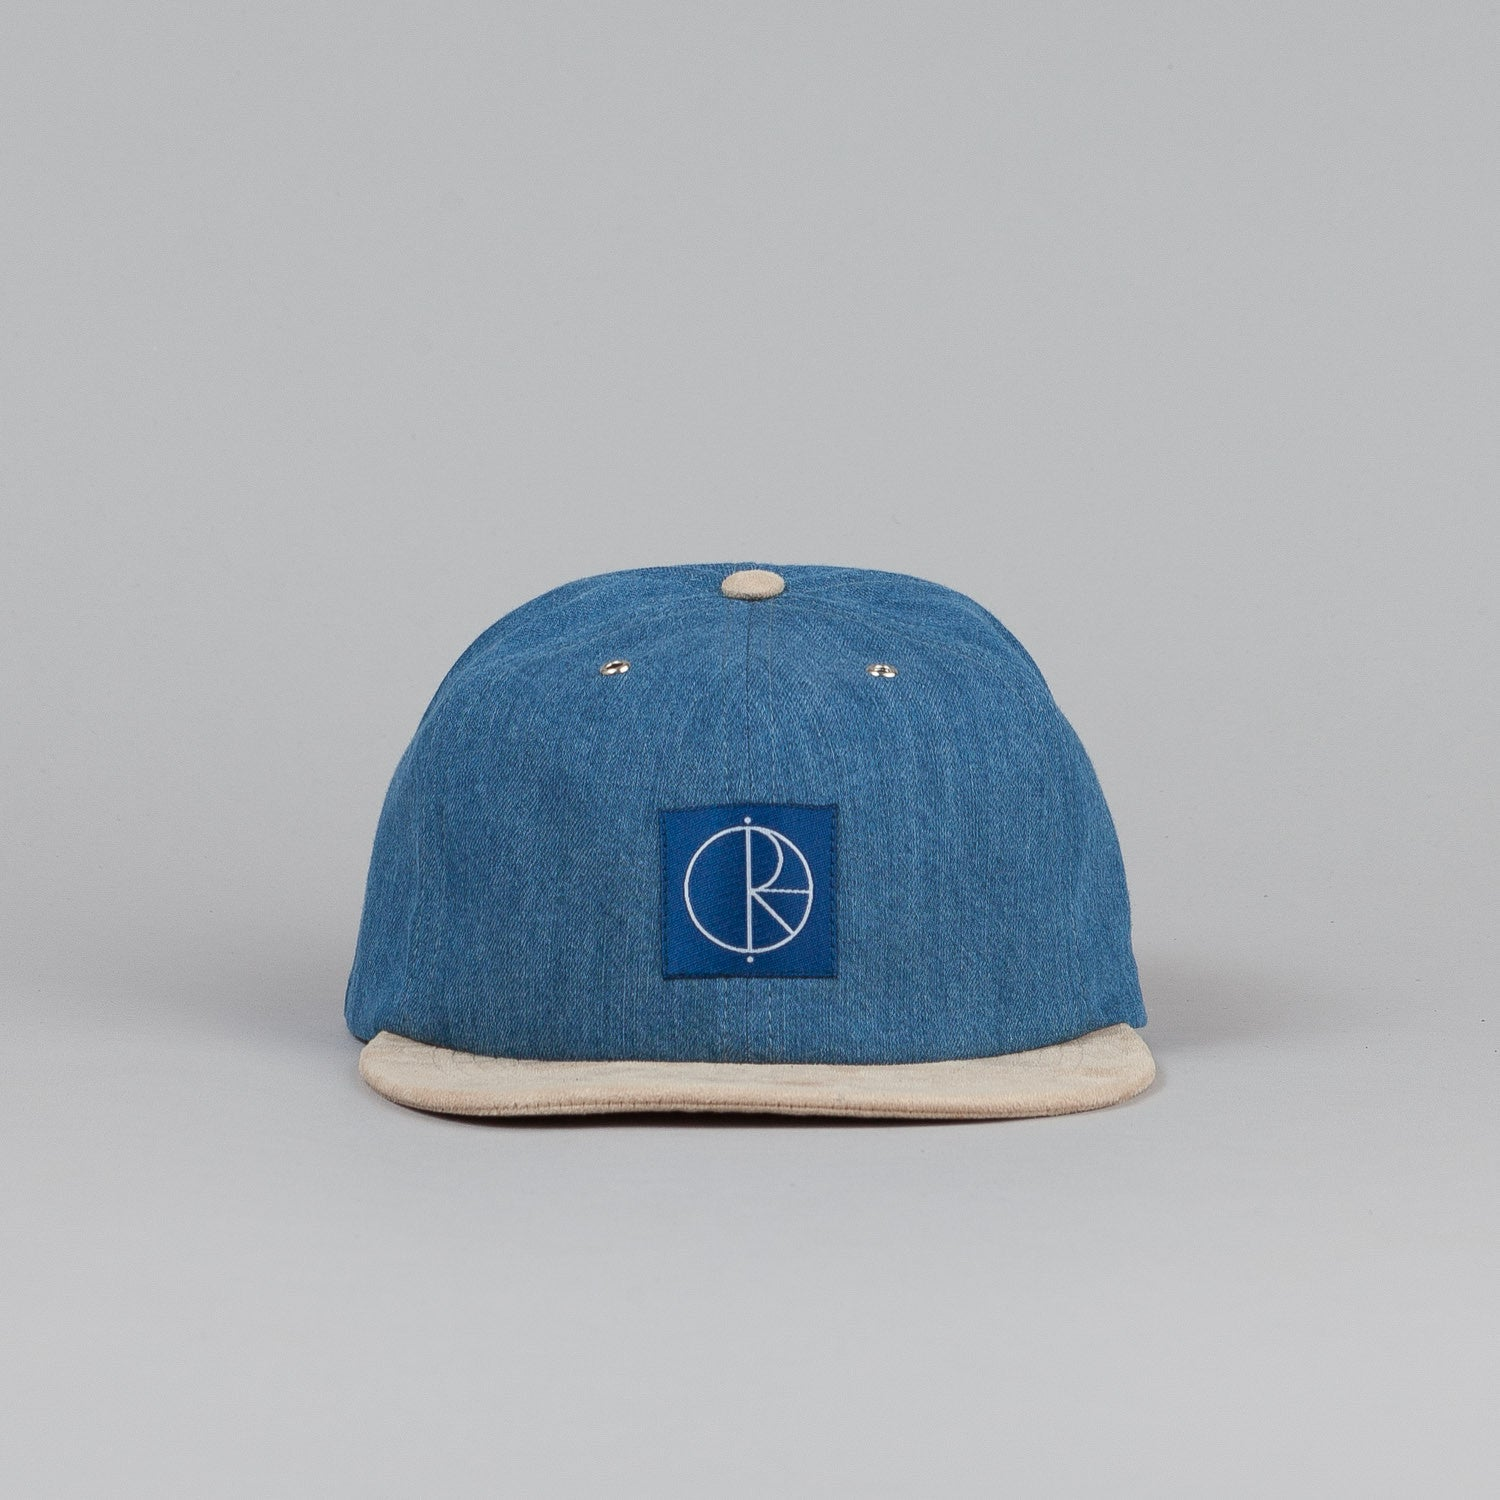 Polar Soft Denim Cap Blue Denim / Soft Yellow / Brown Leather